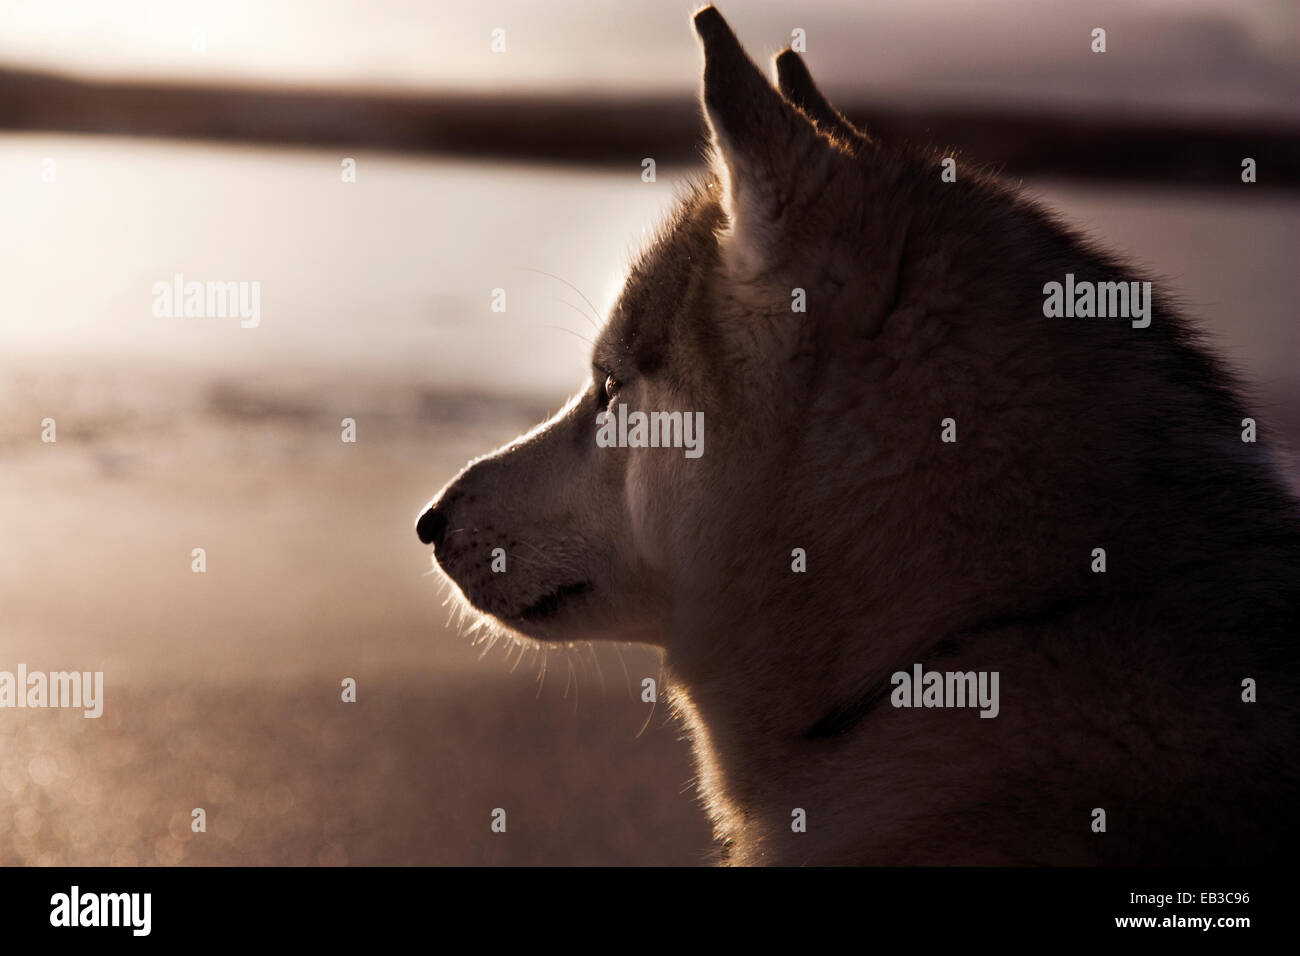 Iceland, Husky dog looking away - Stock Image